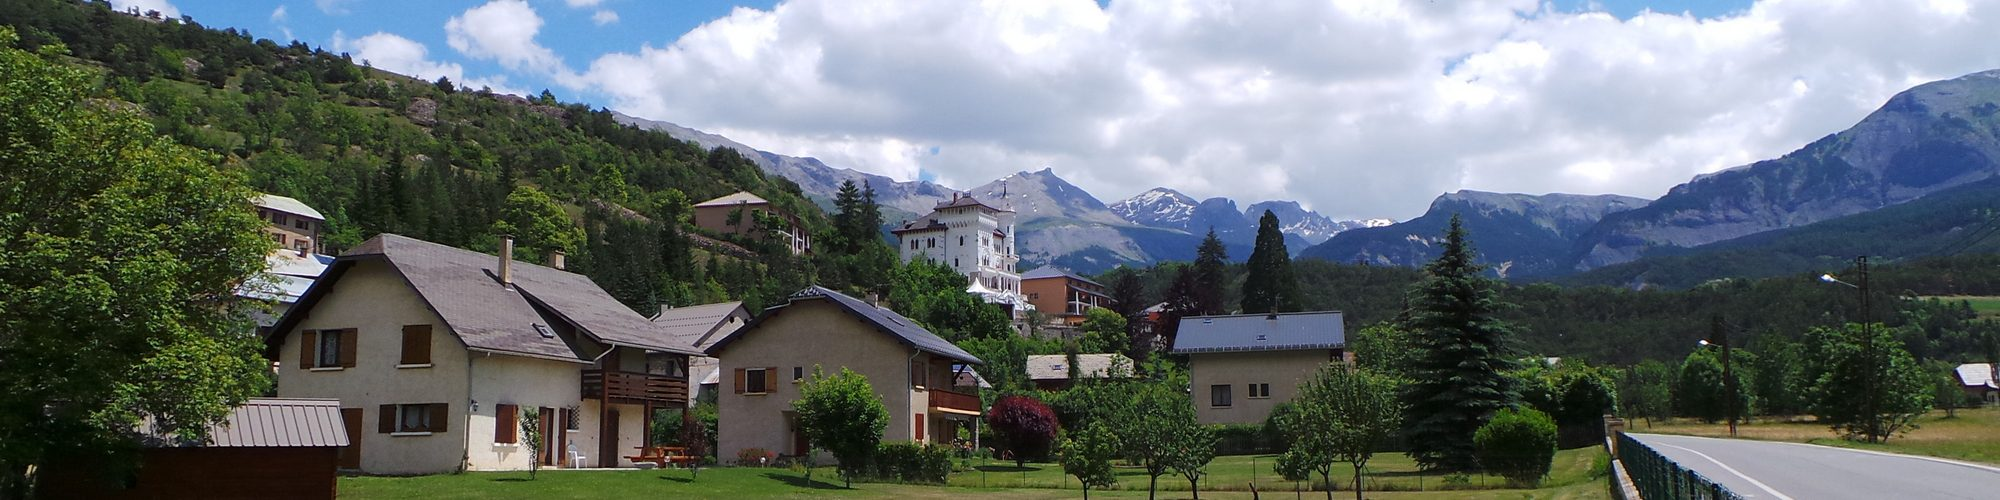 Tour de France 2014 - Part 3: View from the apartment in Jausiers towards the Bonette